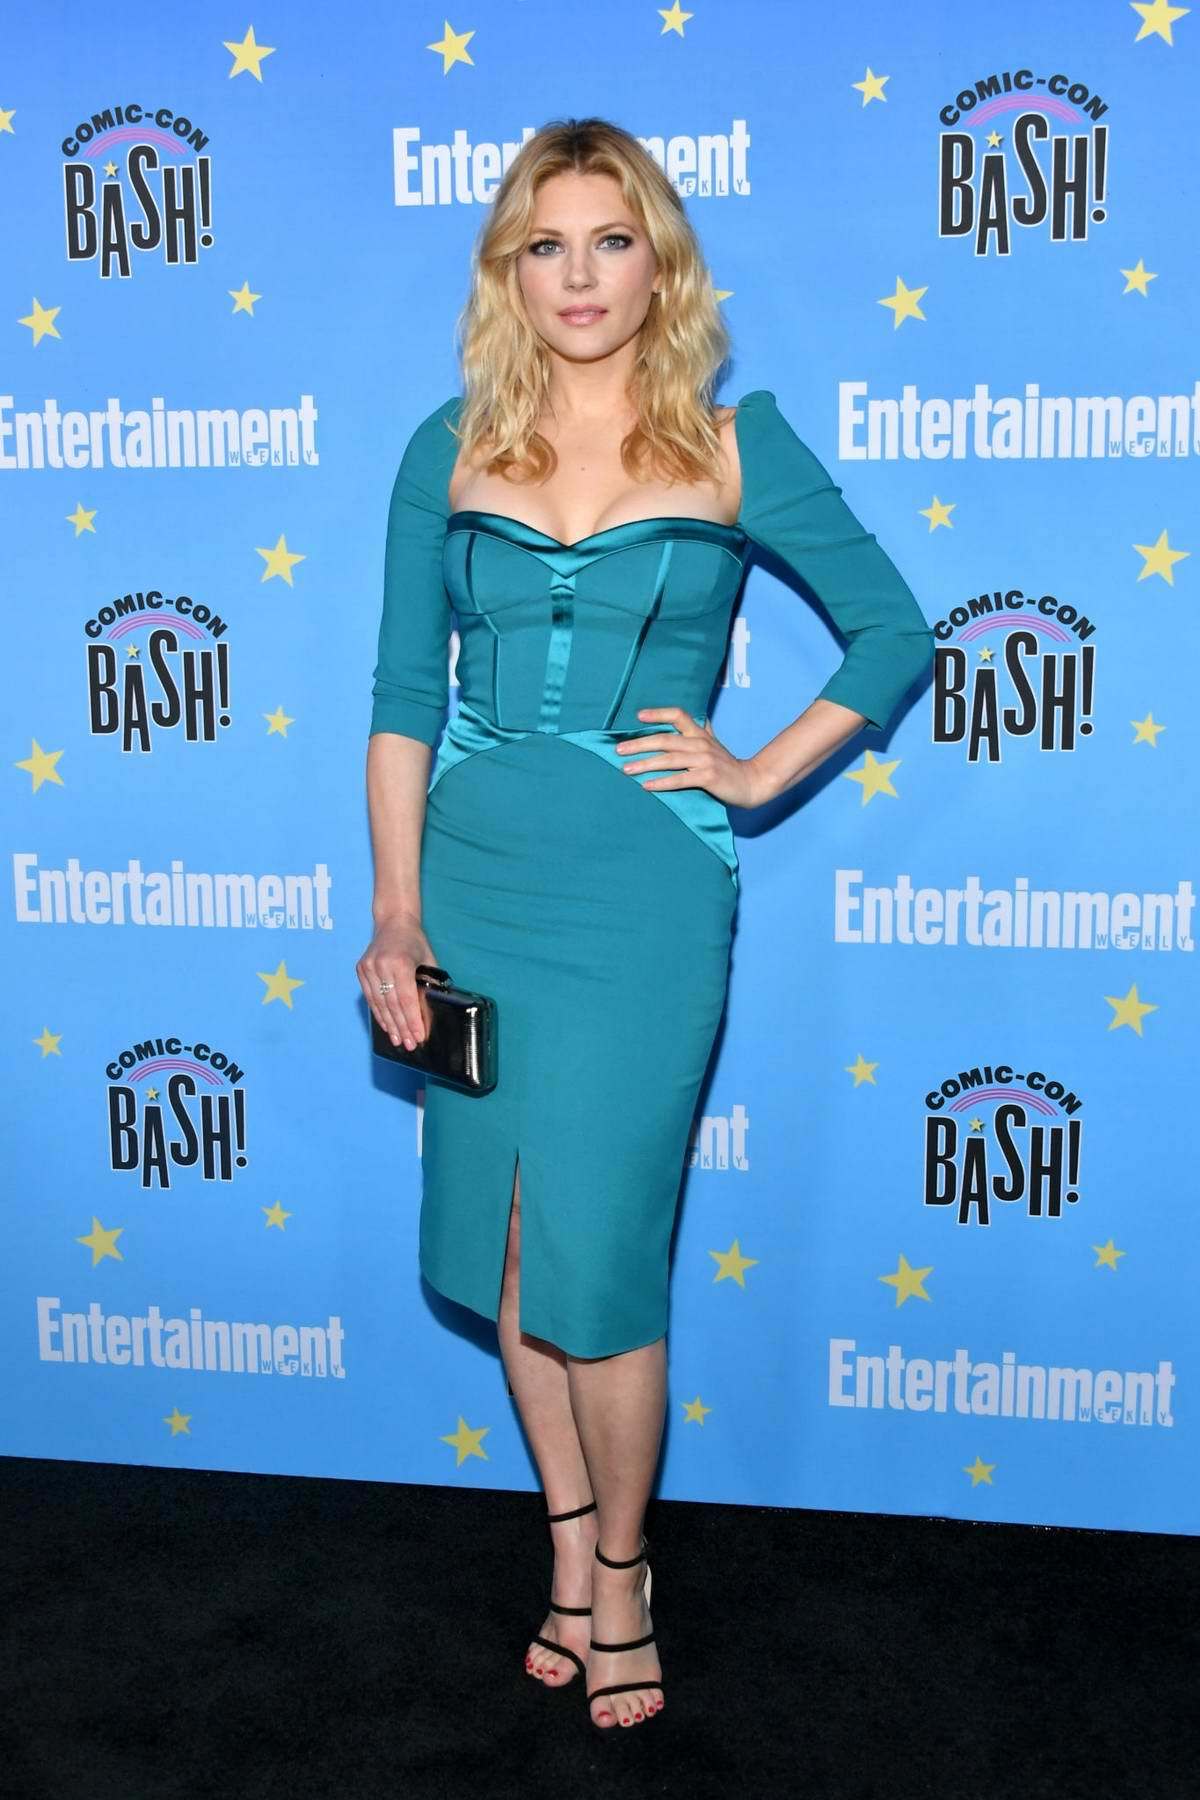 Katheryn Winnick attends Entertainment Weekly's 2019 Comic-Con Bash held at FLOAT, Hard Rock Hotel in San Diego, California